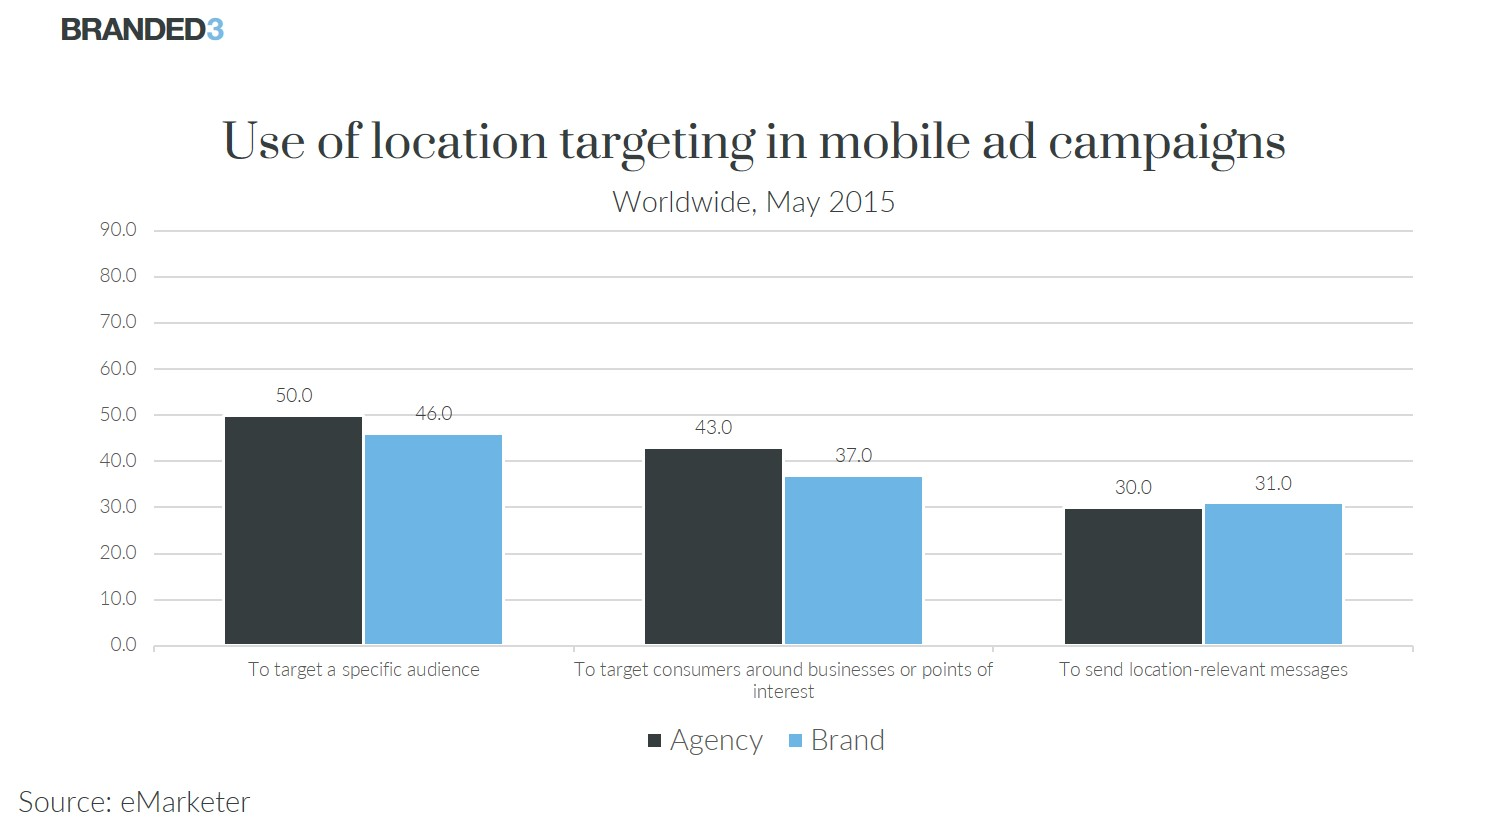 Use of location targeting in mobile ad campaigns